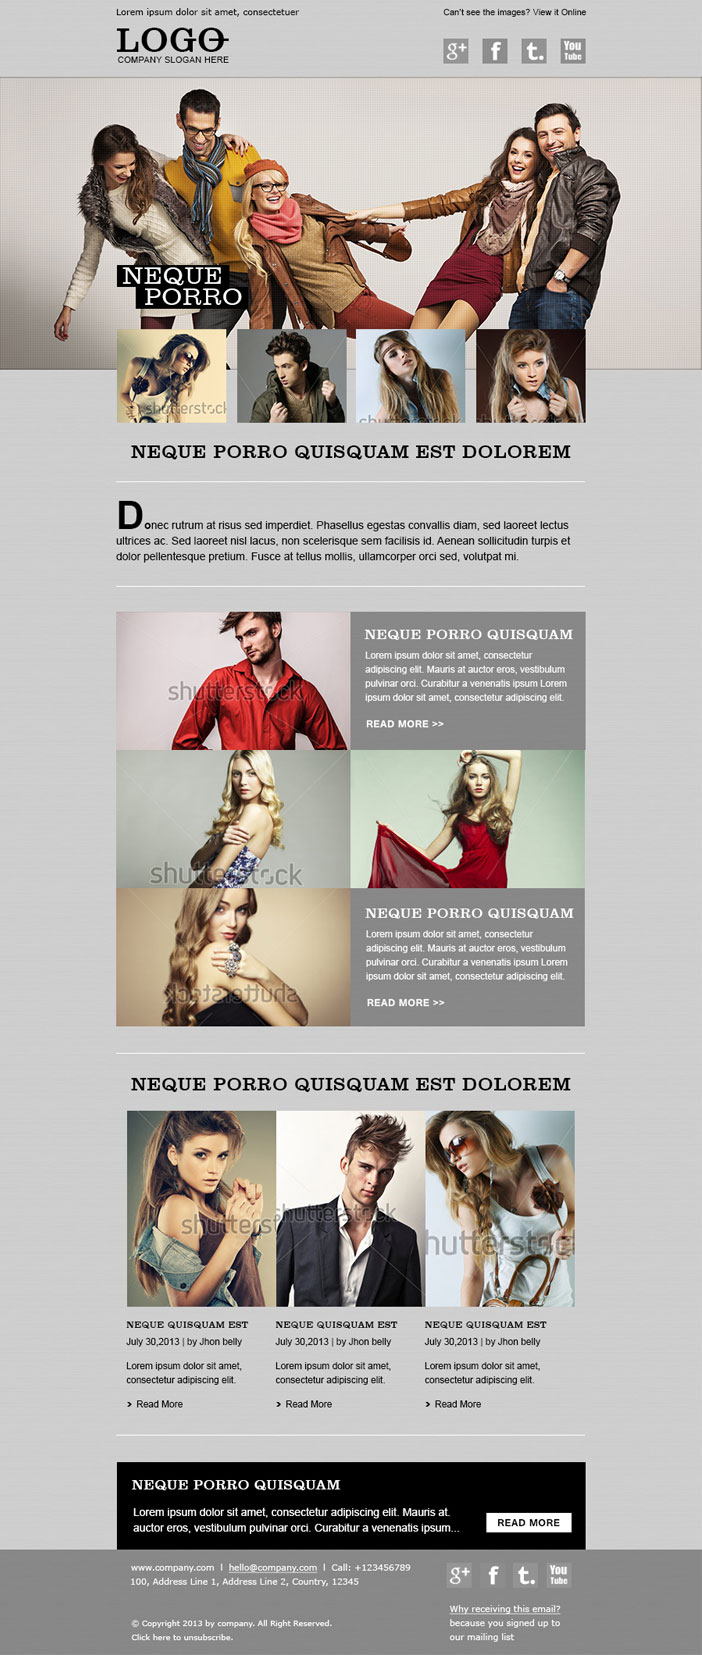 Custom Email Newsletter Template Design & HTML Coding Service